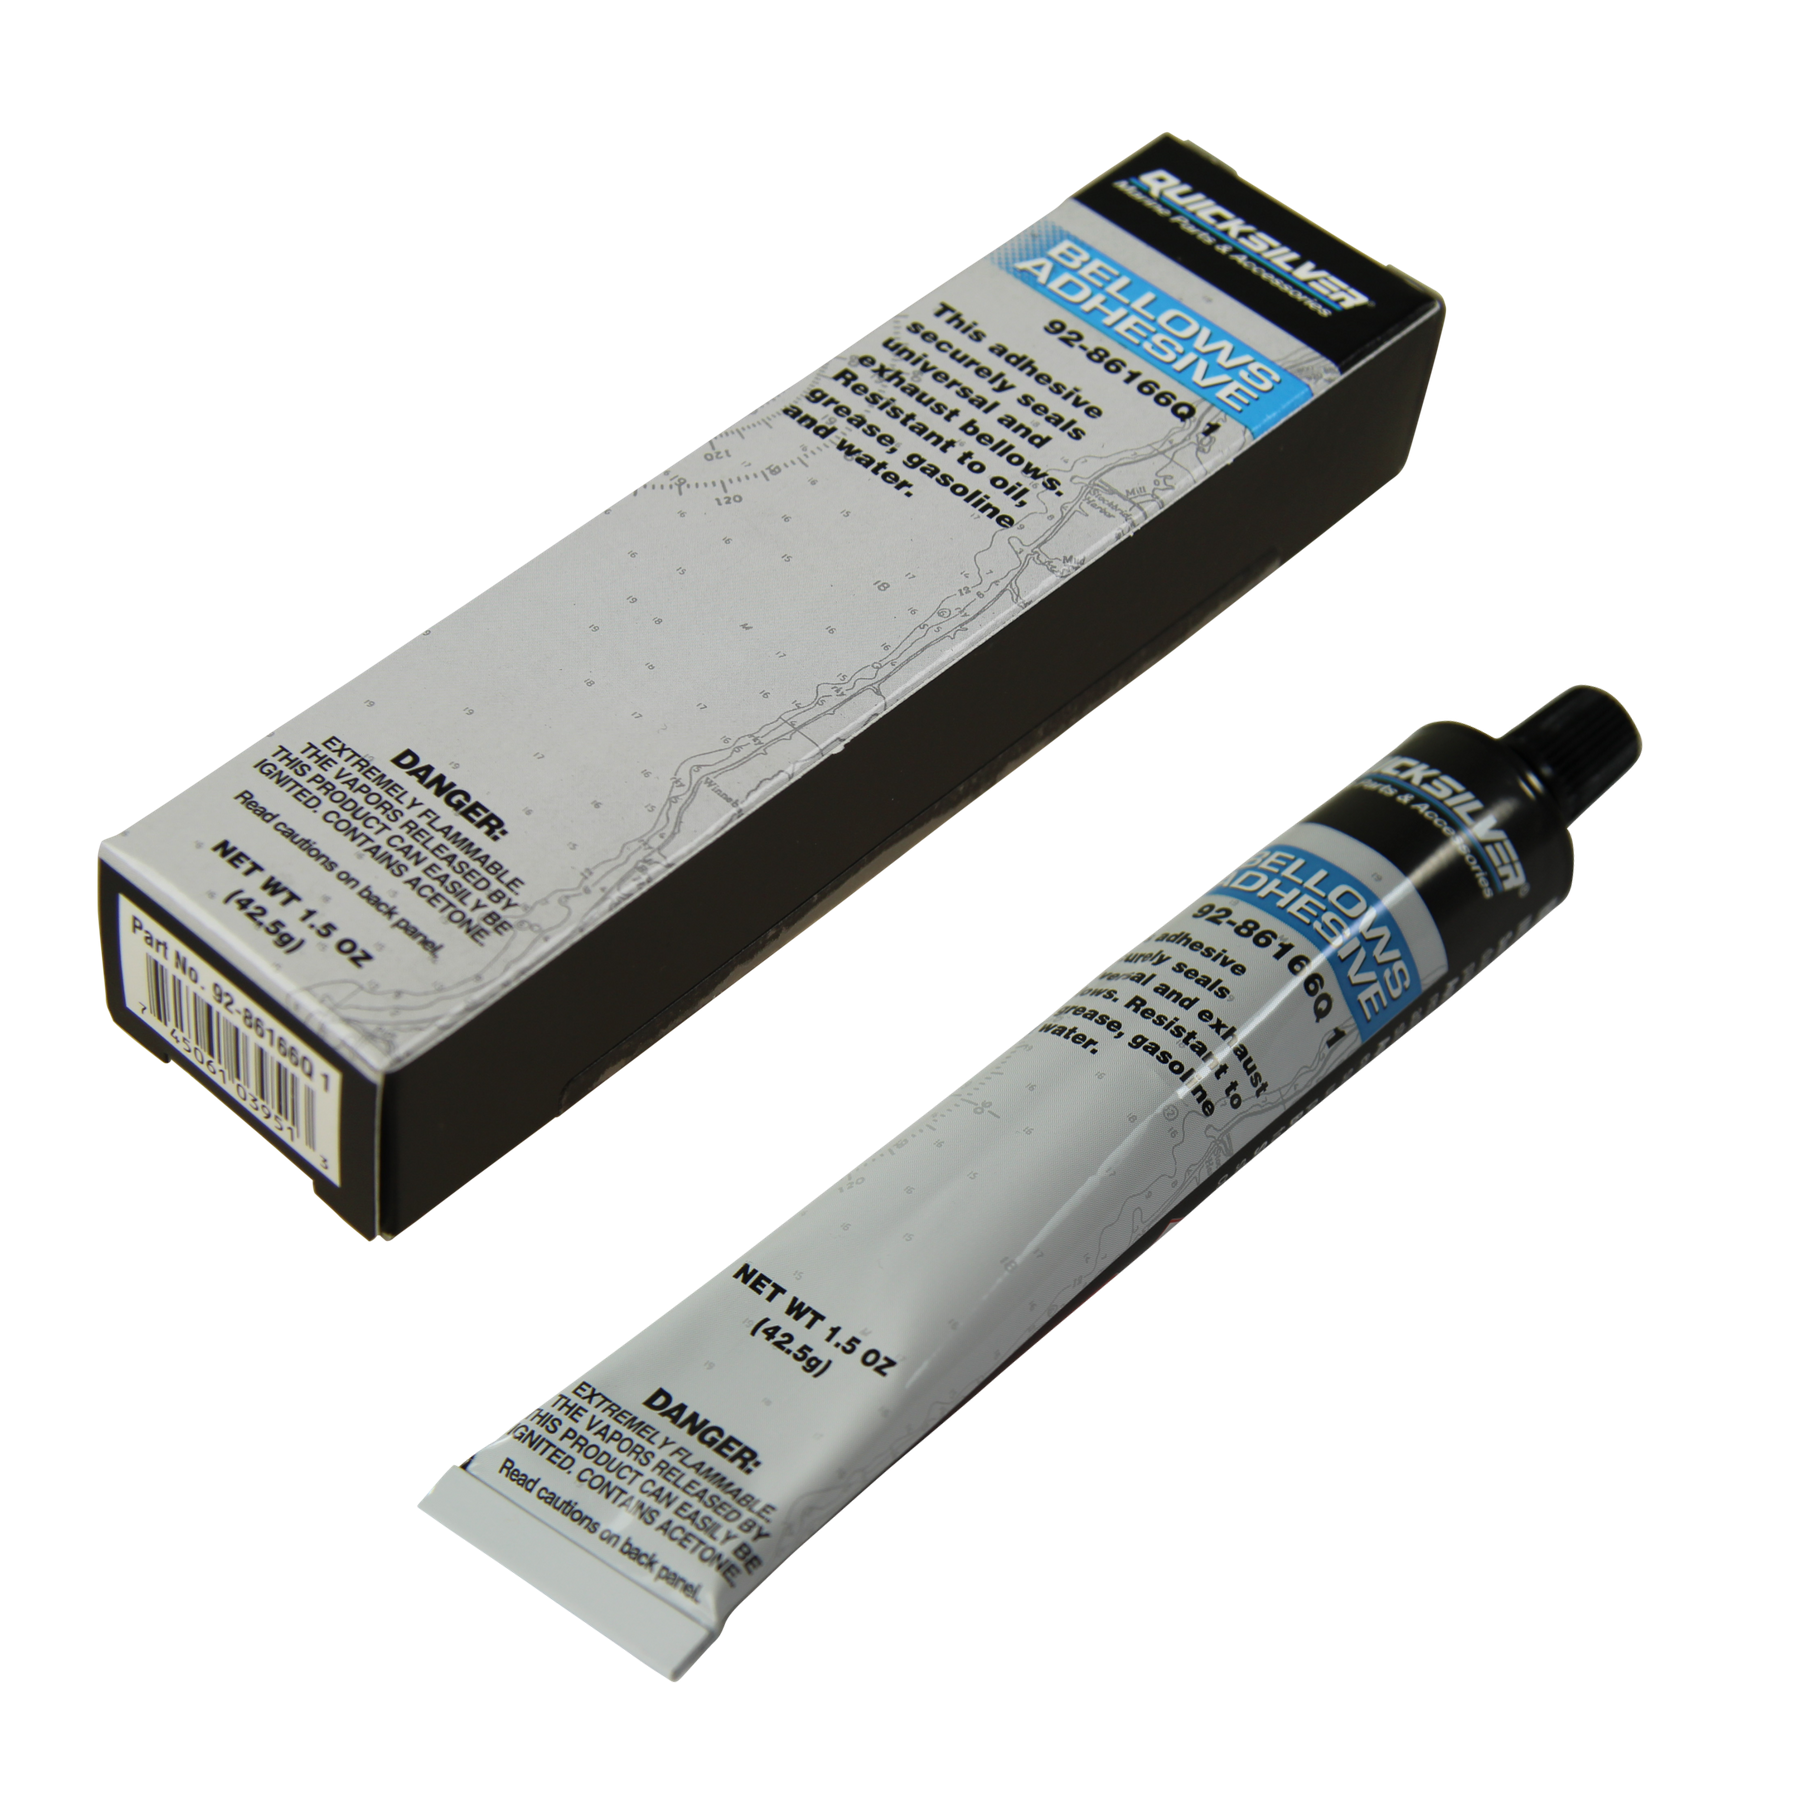 Bellows Adhesive Dichtmasse 42,5g